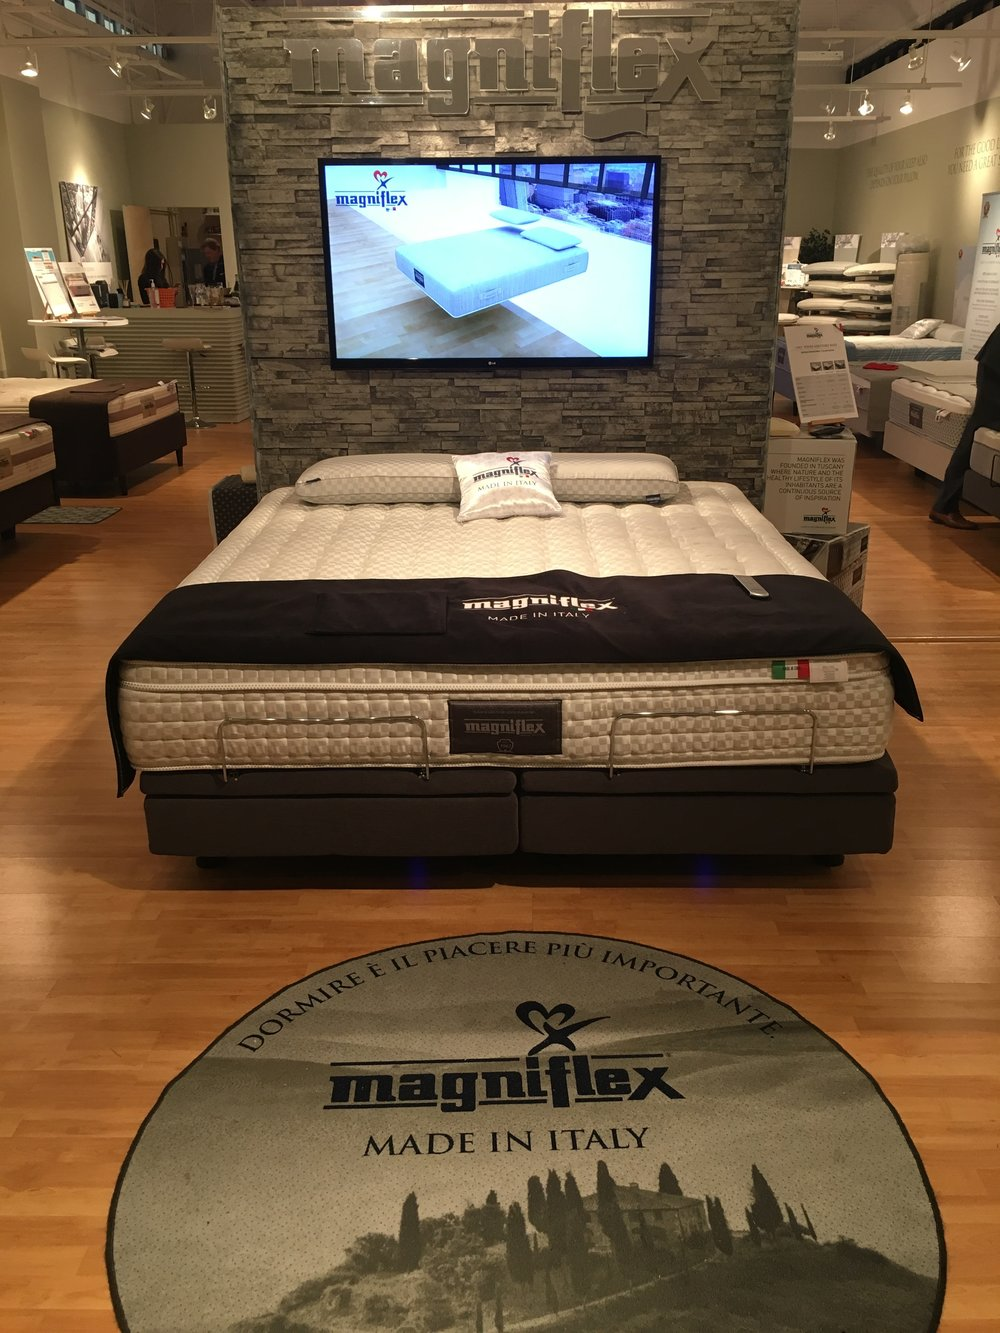 Magniflex Showroom